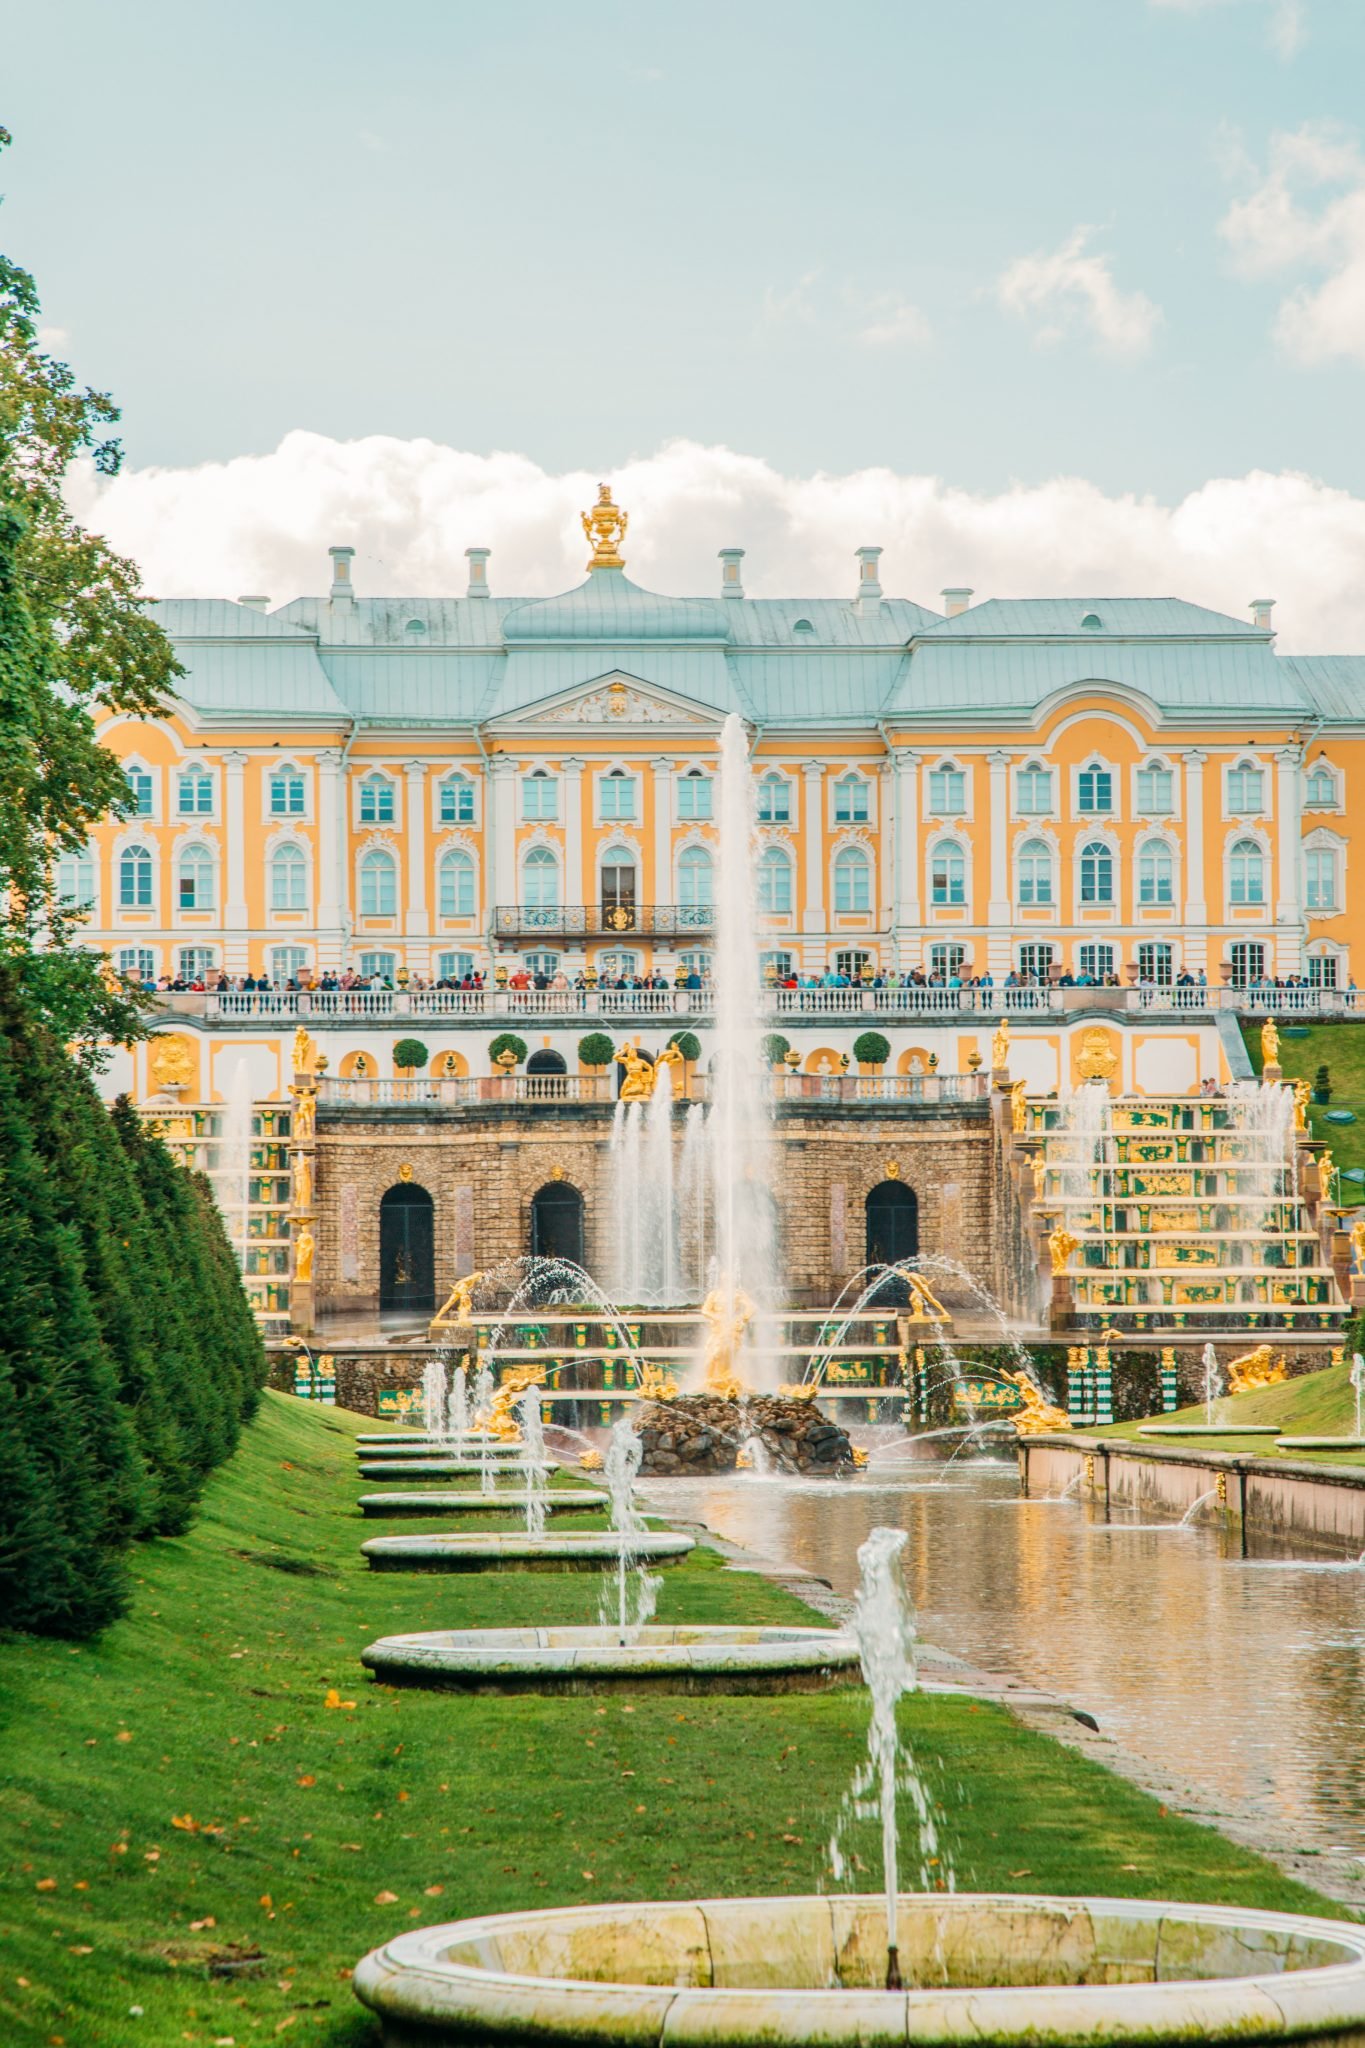 Inside the Lower Park at Peterhof Palace.